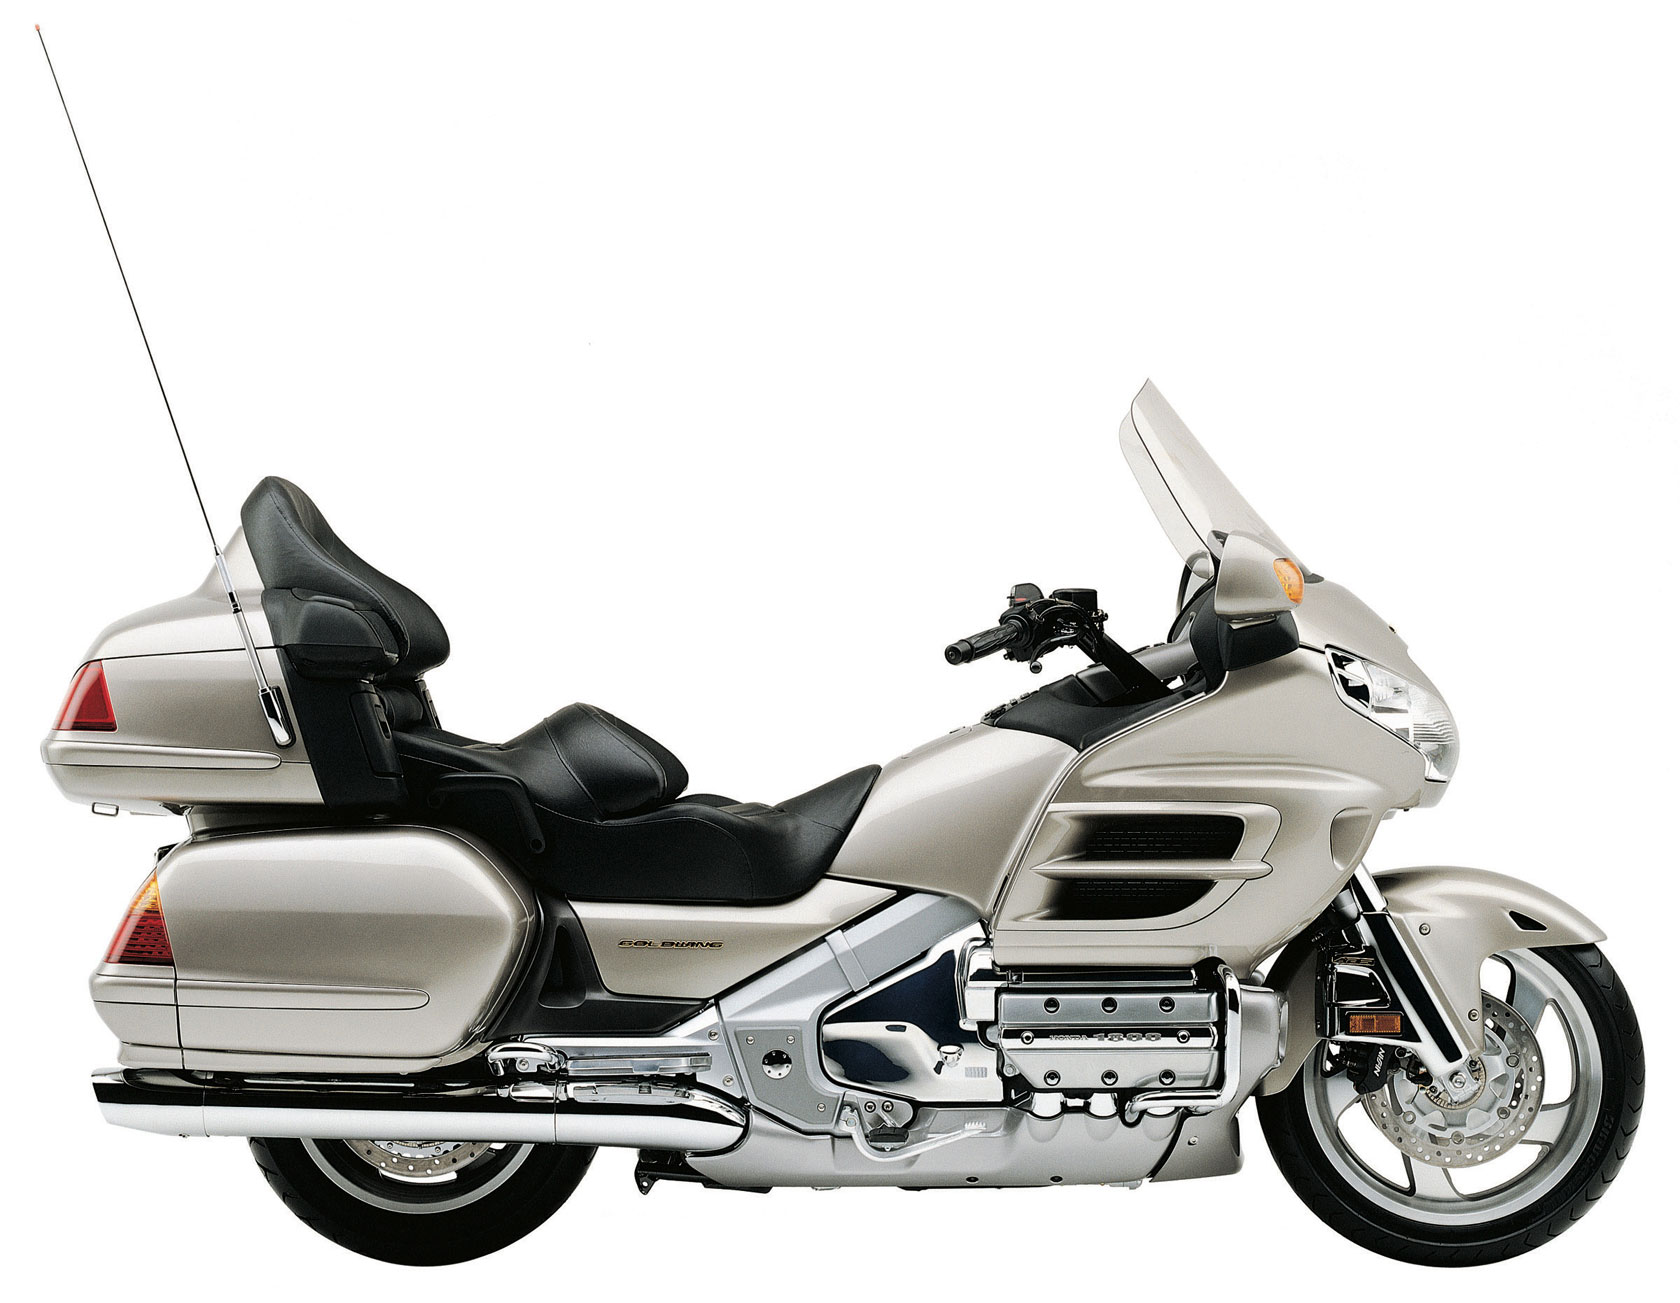 2005 honda gl 1800 gold wing pics specs and information. Black Bedroom Furniture Sets. Home Design Ideas